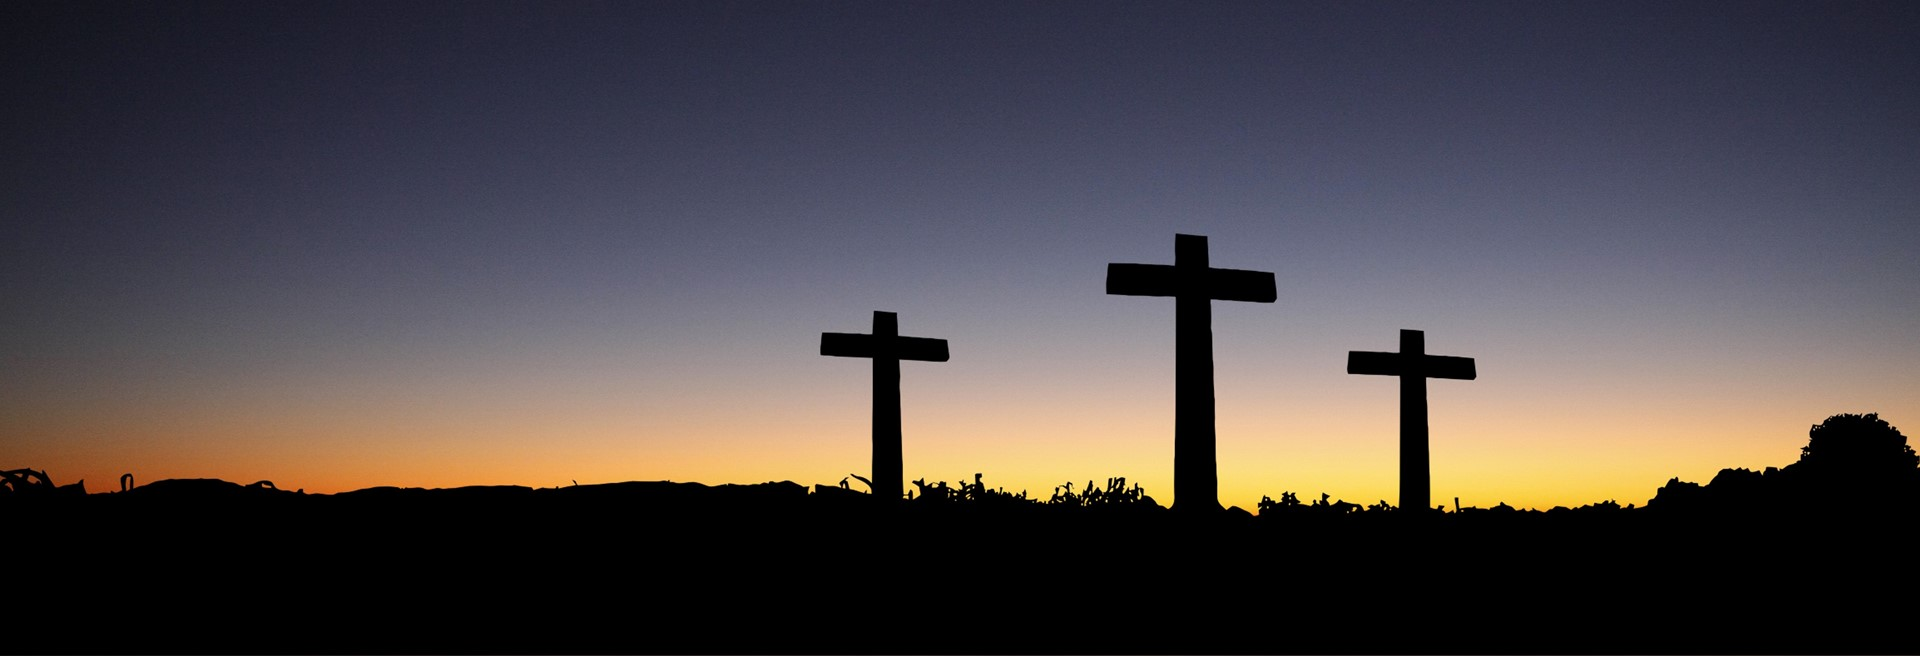 Landscape View Of 3 Cross Standing During Sunset 161188